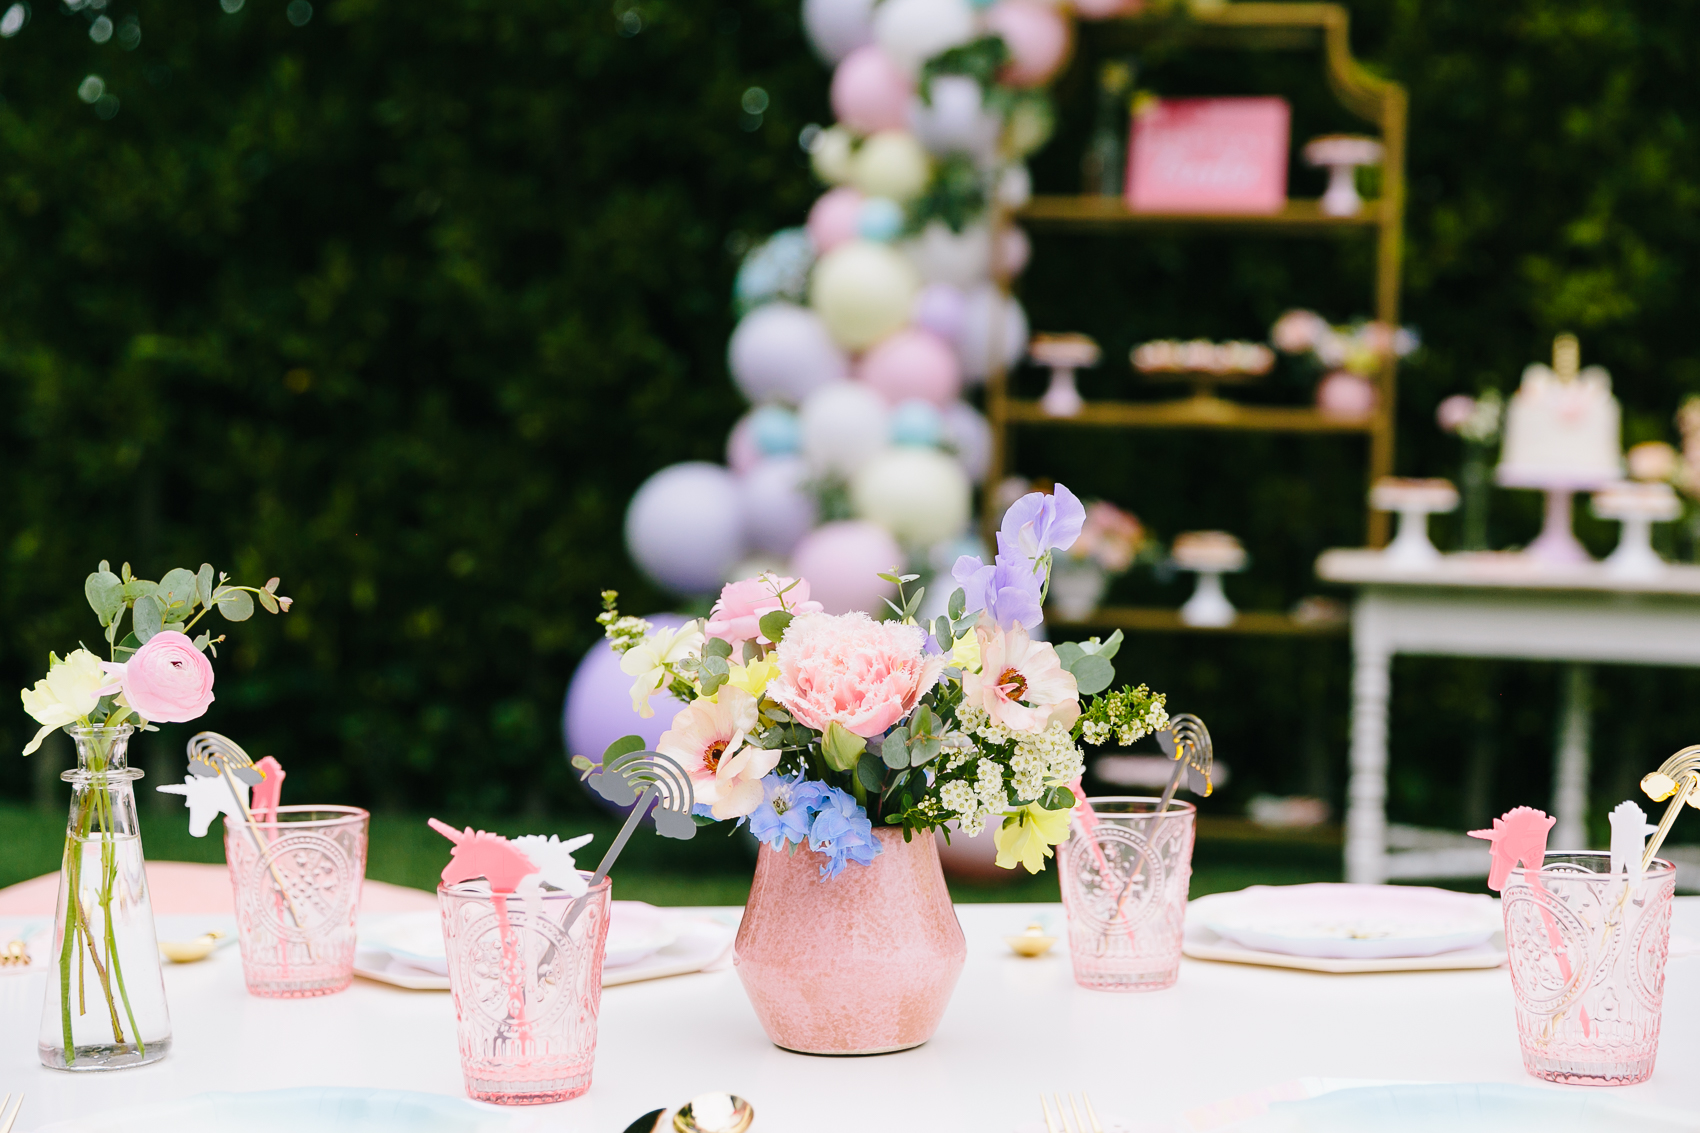 Los_Angeles_Family_Photographer_Luxury_Childrens_Party_Beverly_Hills_Unicorn_Birthday_Party-0064.jpg